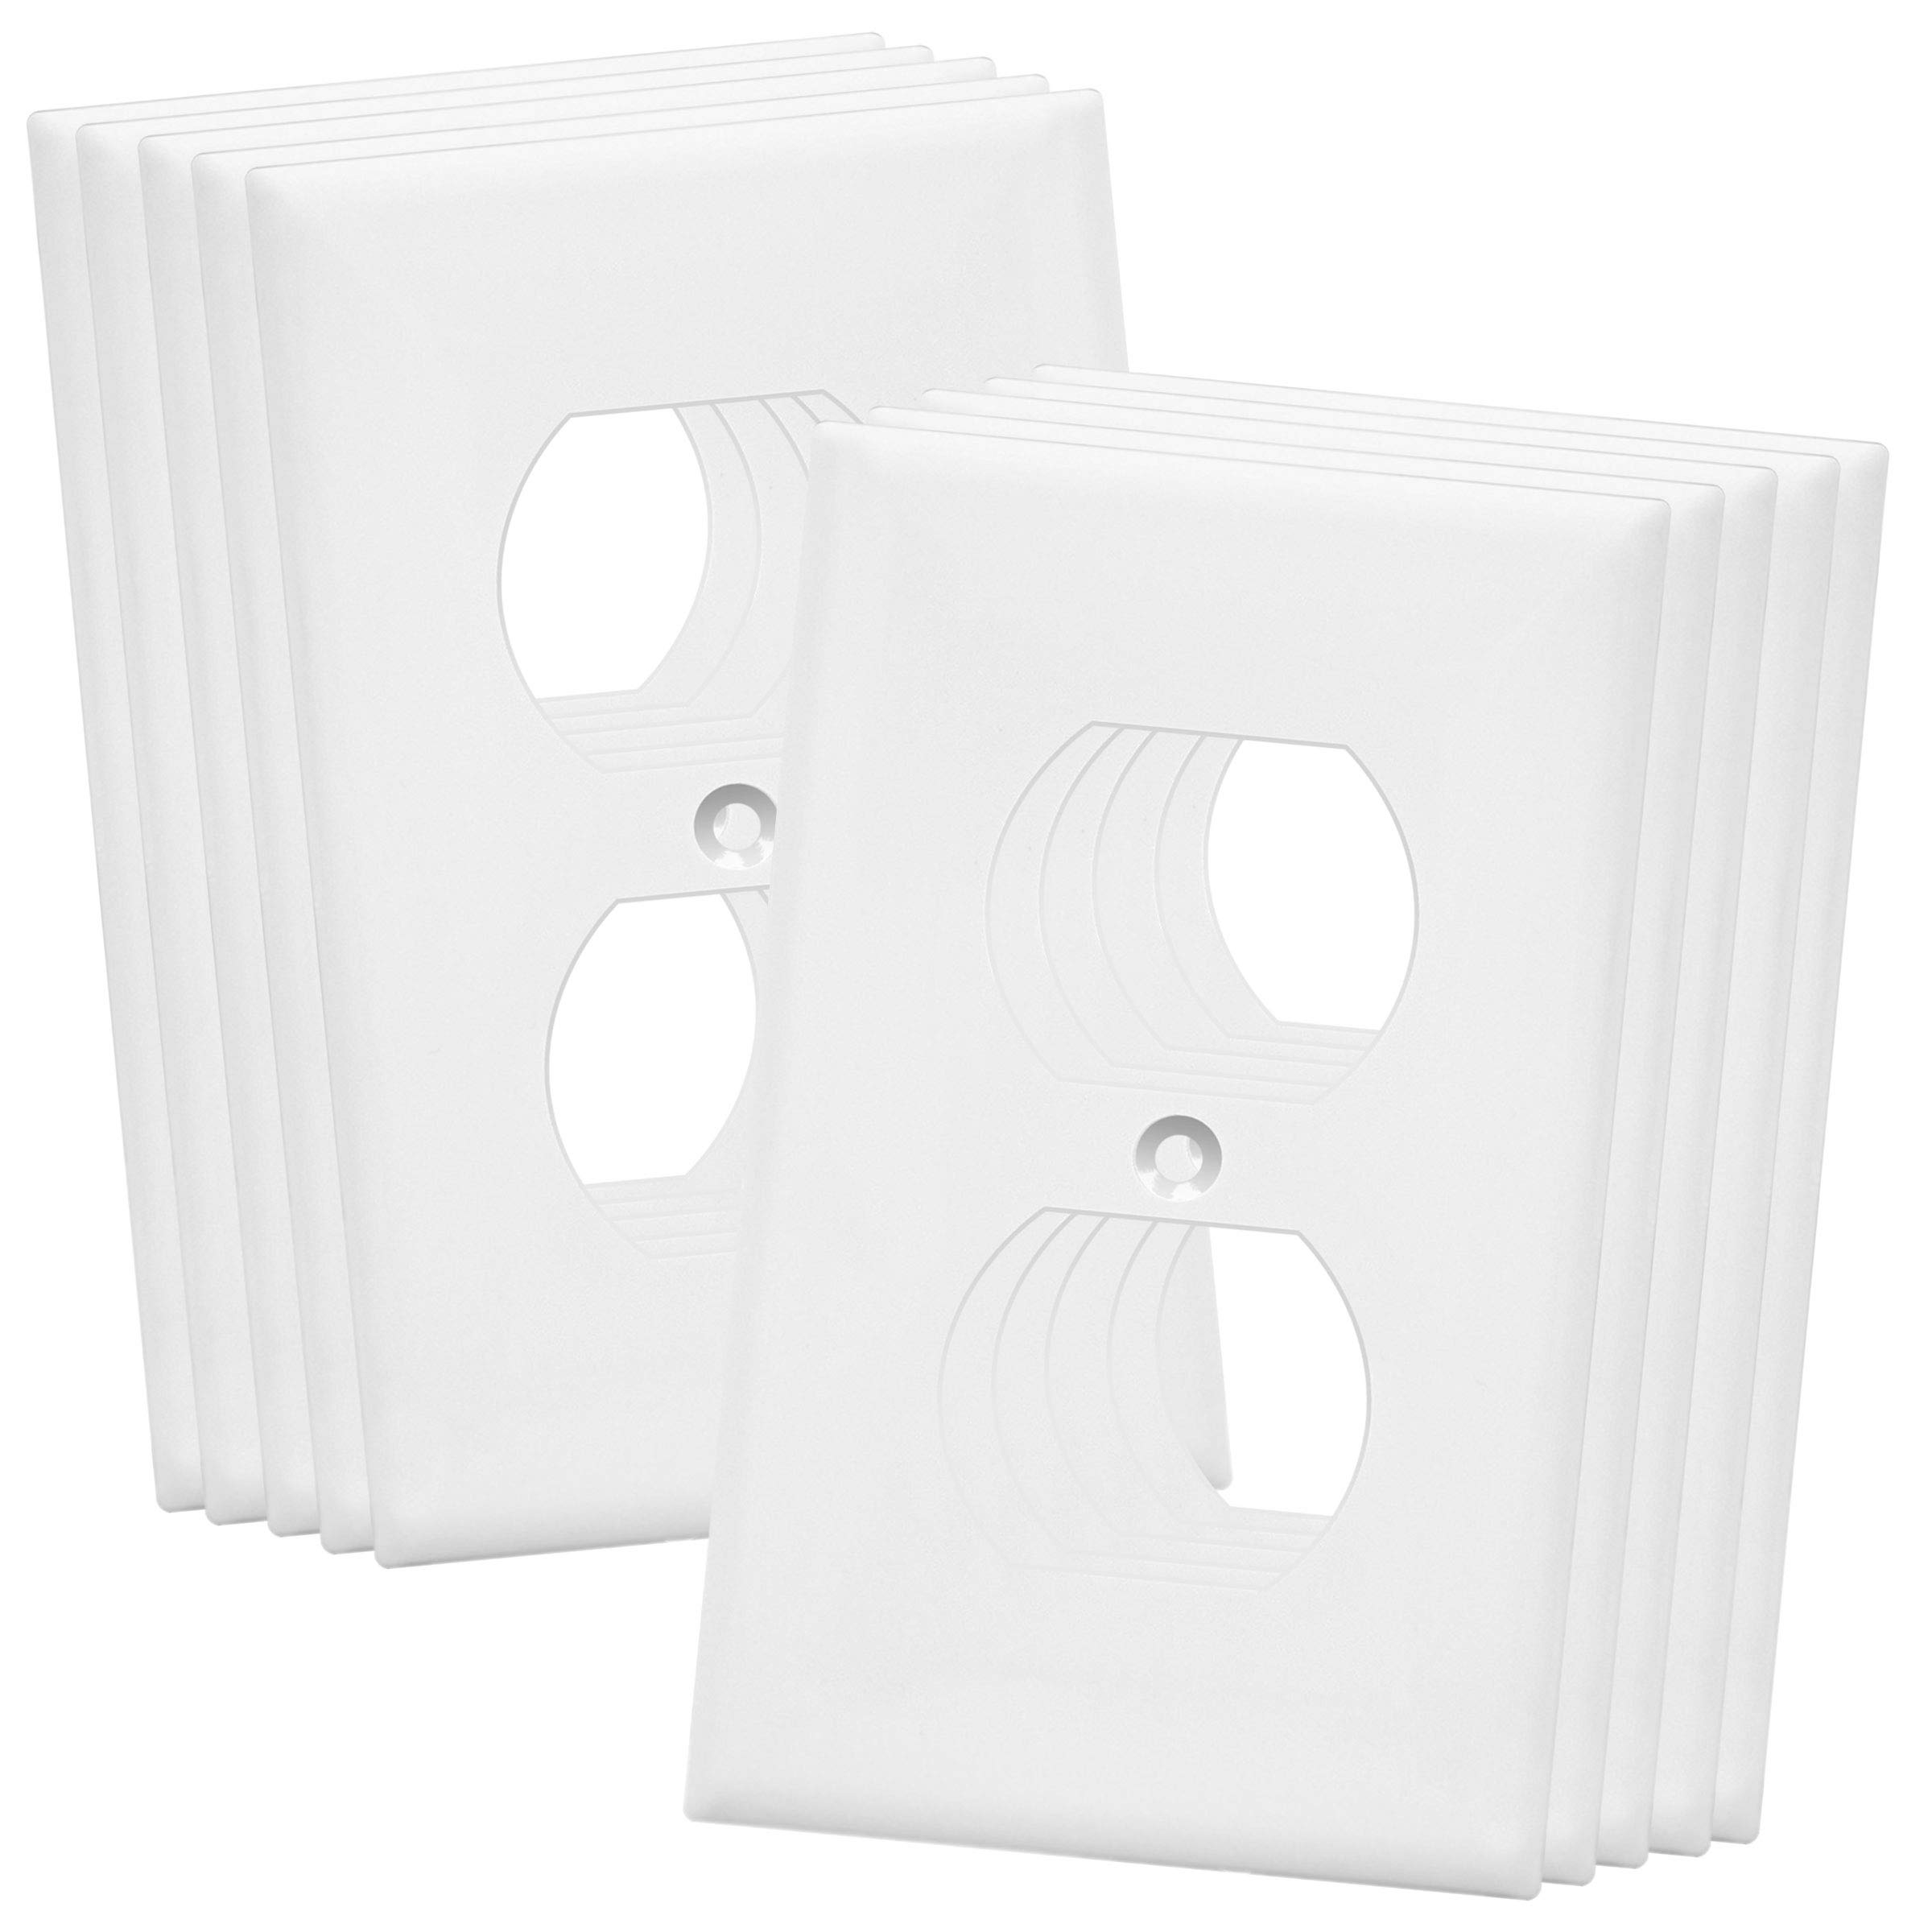 ENERLITES Duplex Receptacle Outlet Wall Plate, Over-Size 1-Gang 5.5'' x 3.5'', Polycarbonate Thermoplastic, 8821O-W-10PCS, White (10 Pack)